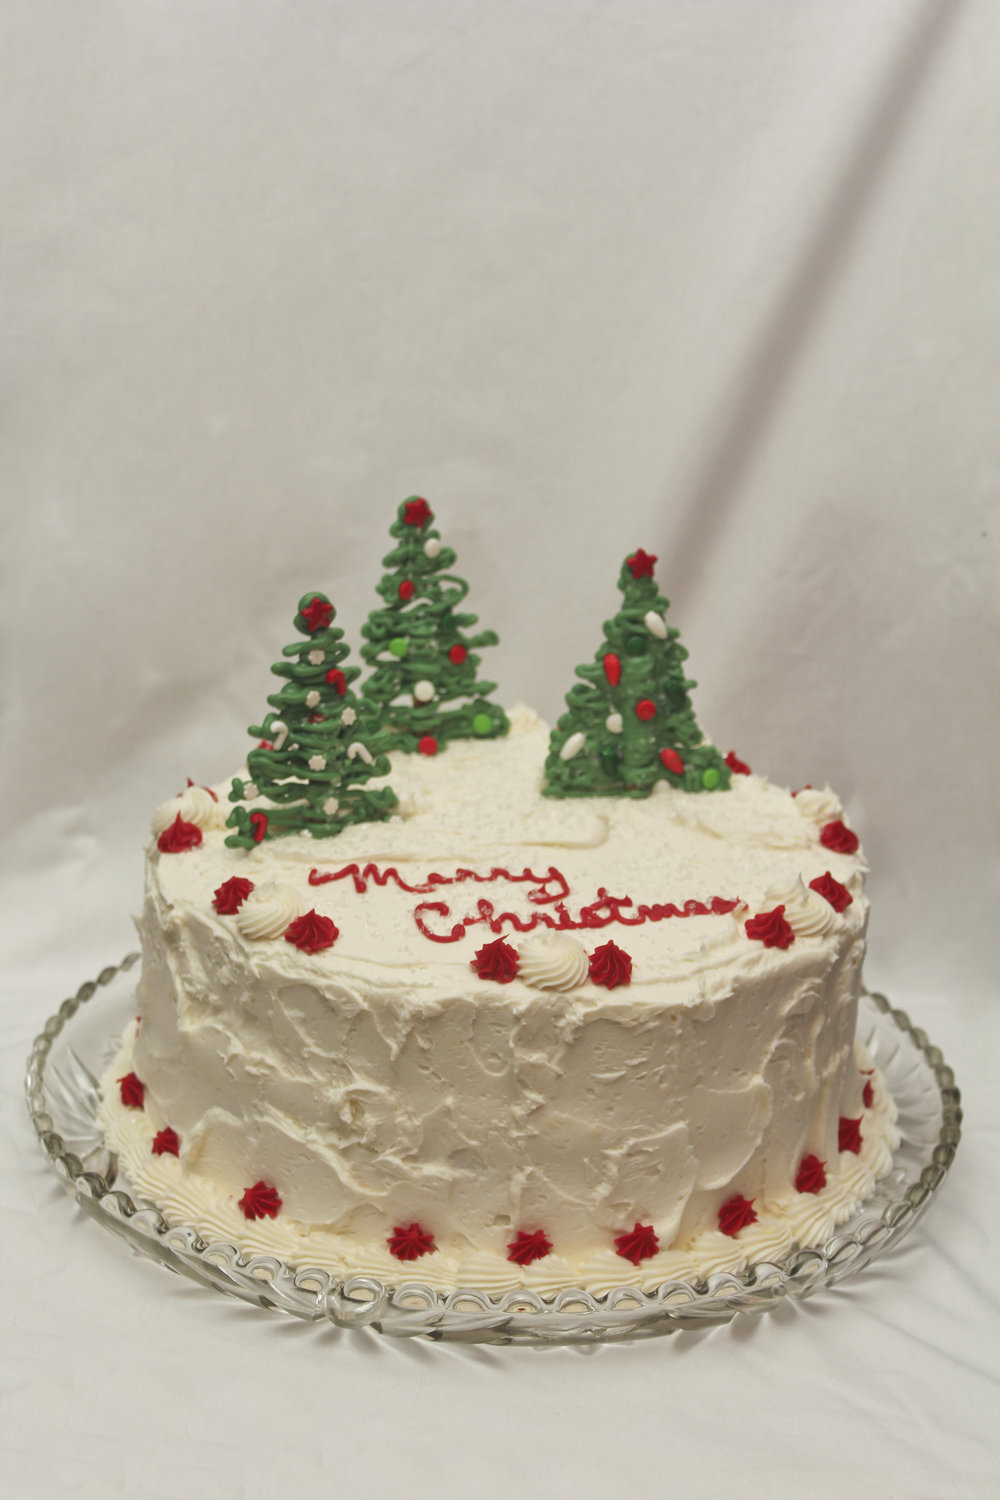 Christmas themed cake decorated with Christmas trees made of chocolate